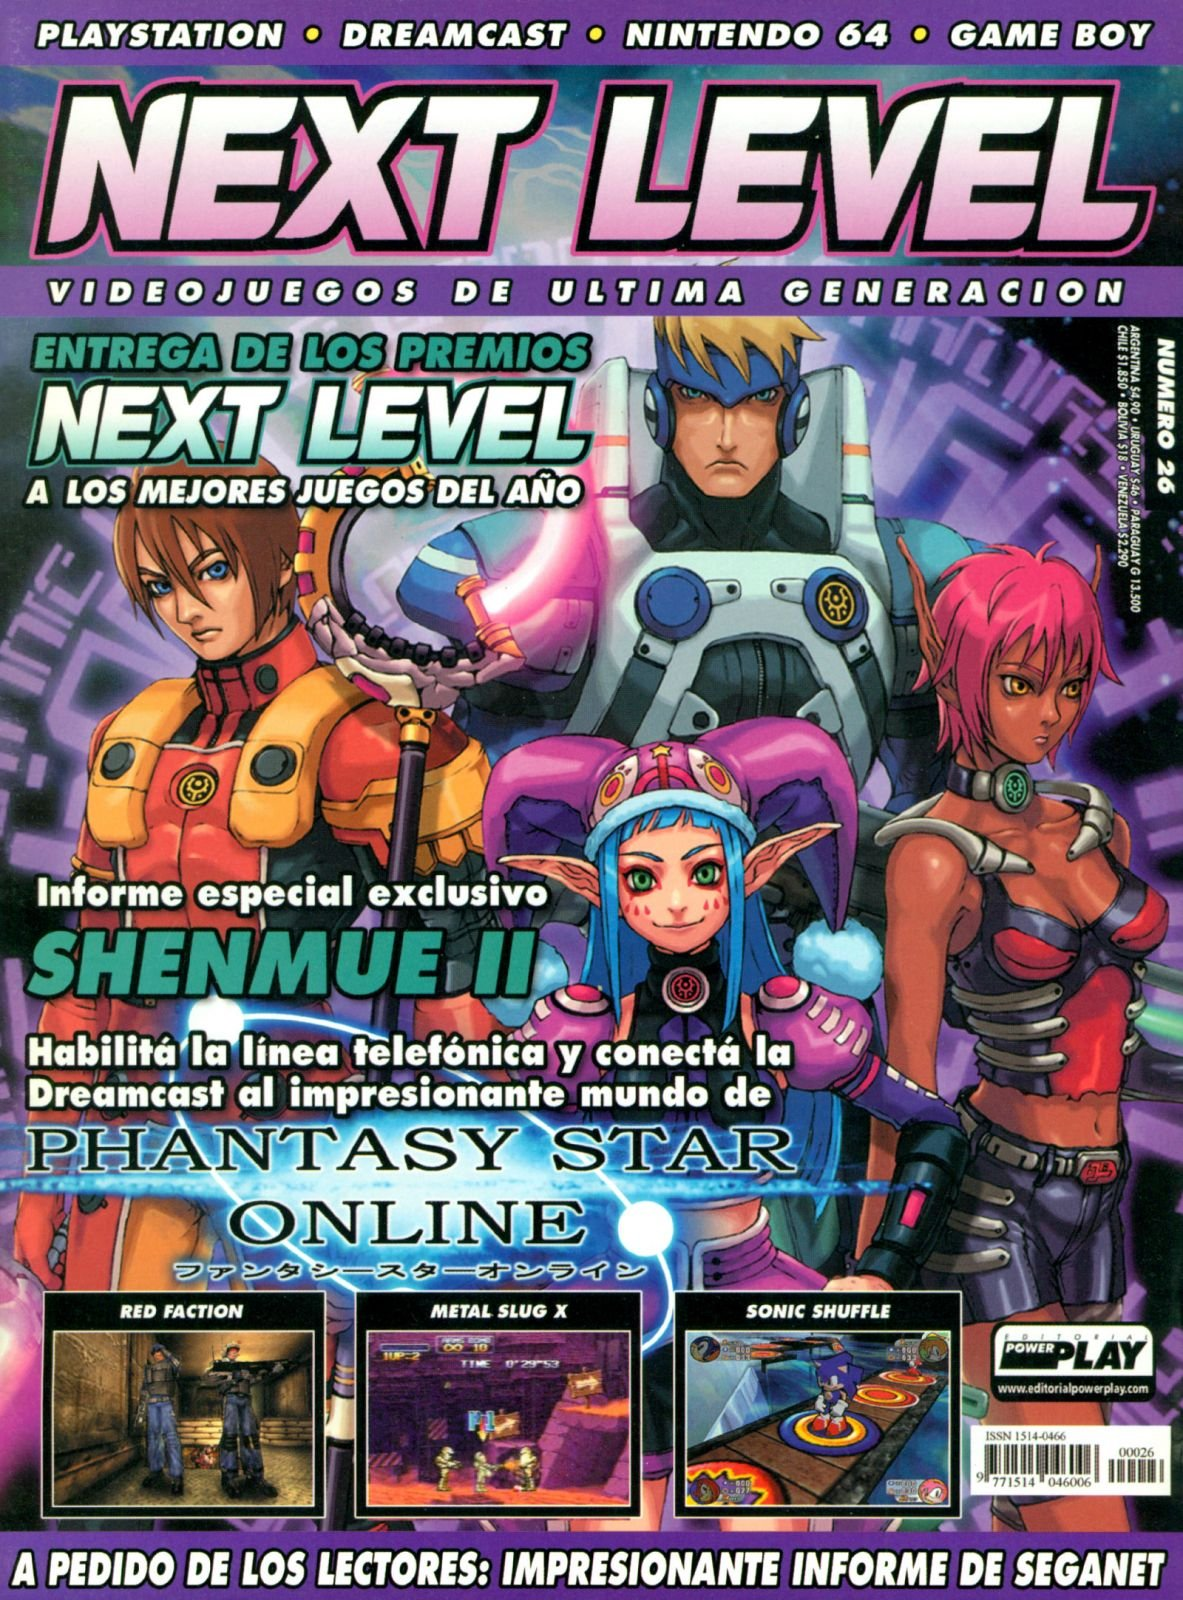 Next Level 26 March 2001